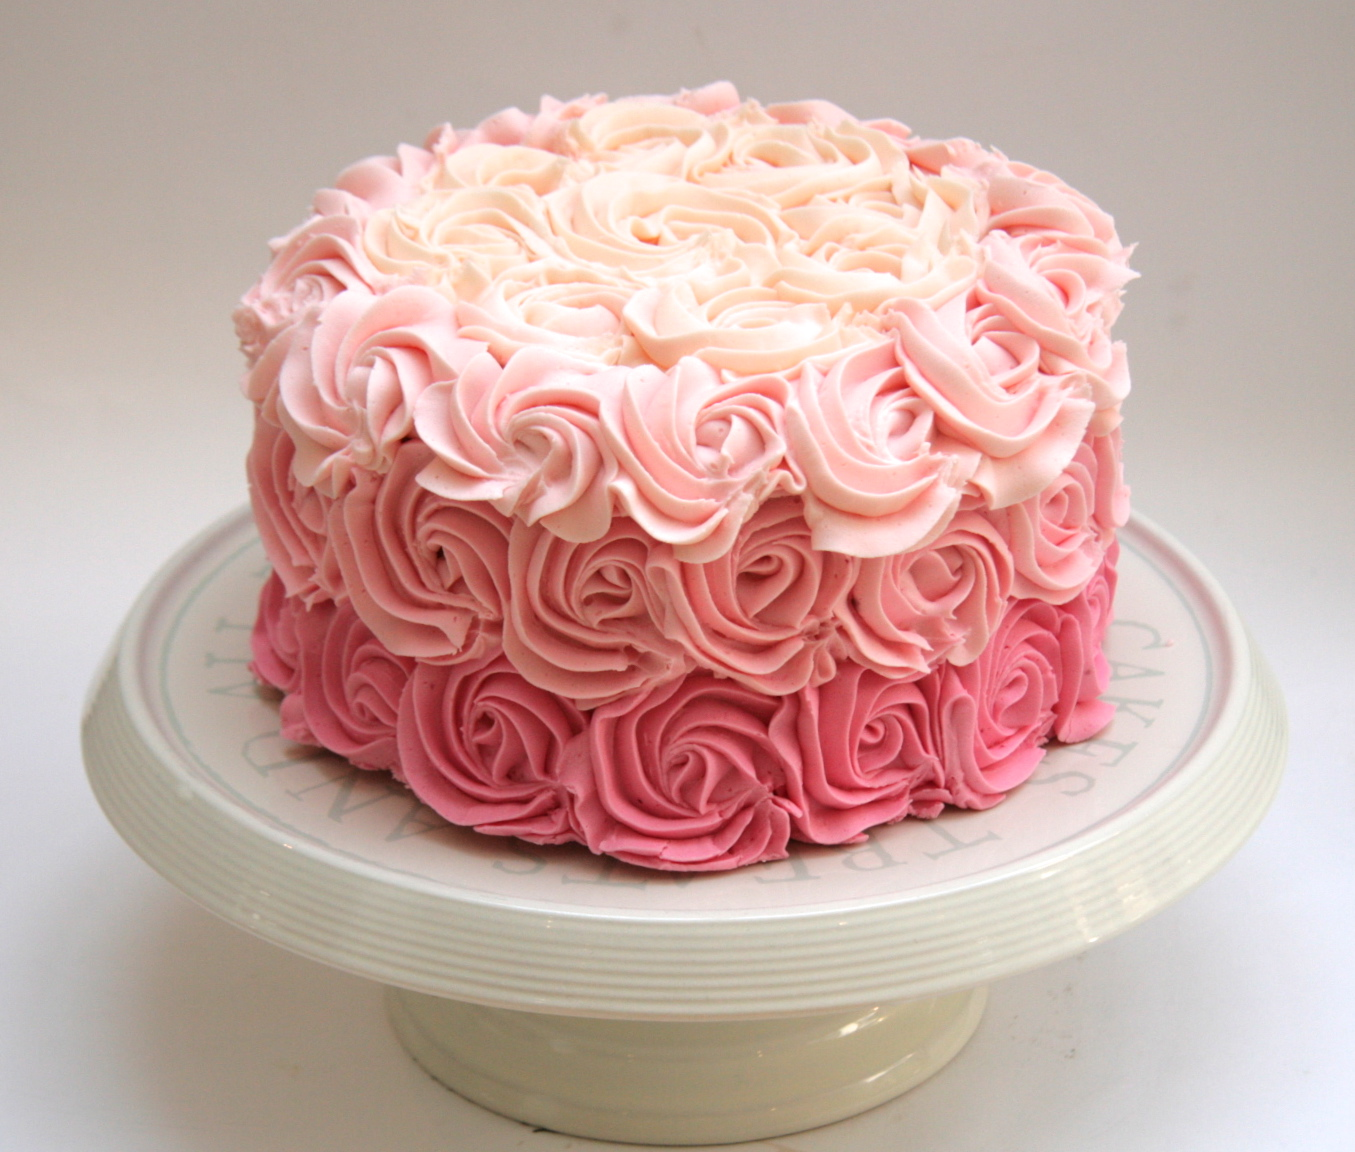 Cake Images With S : Rose Cakes